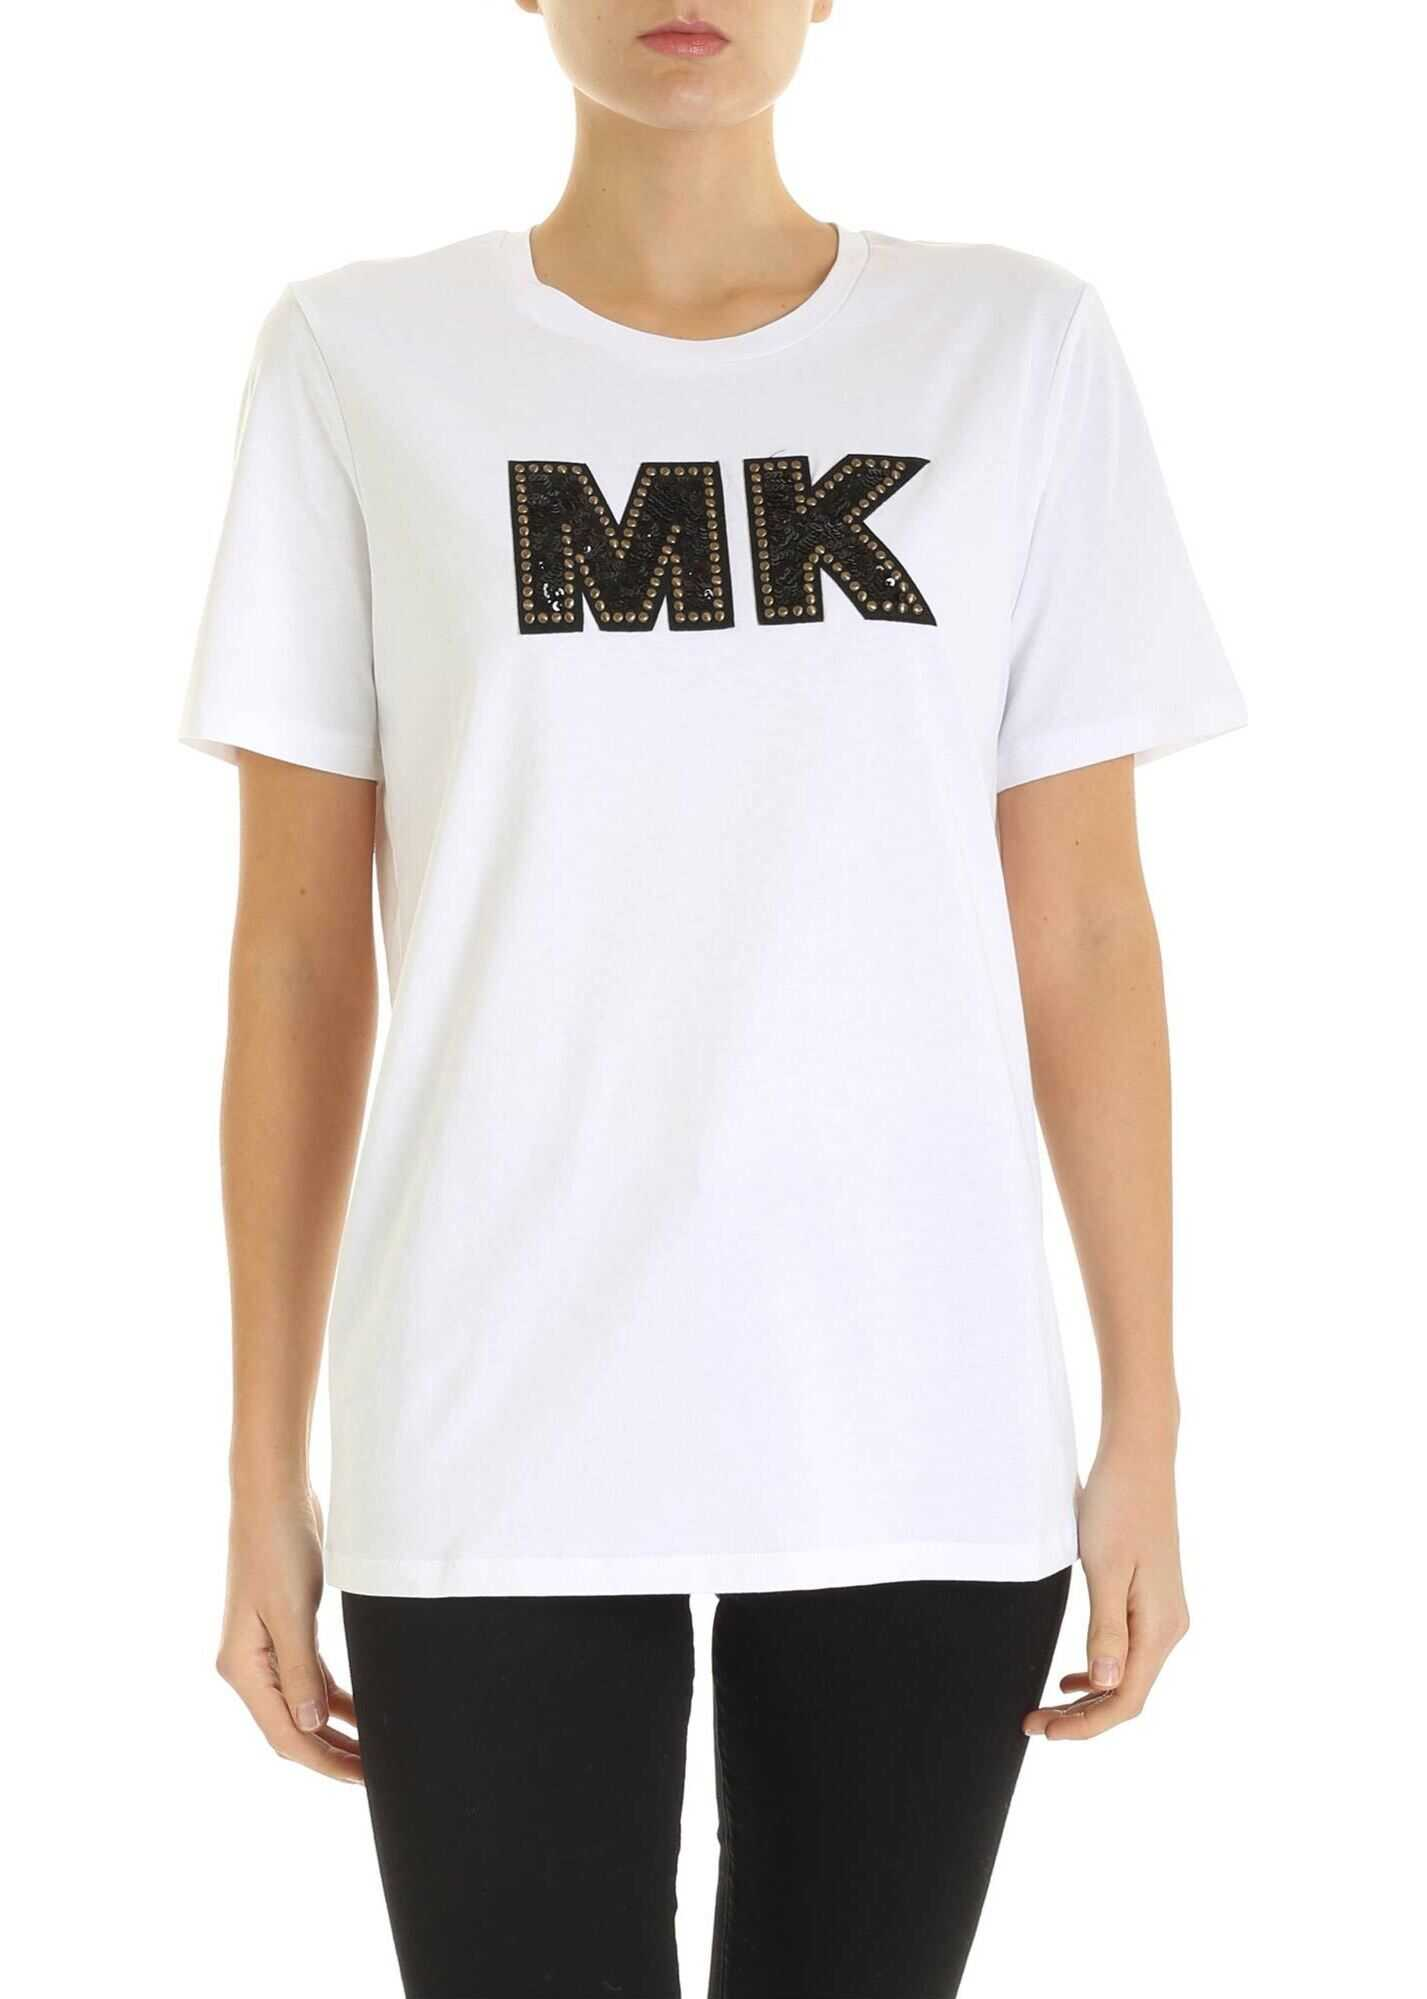 Michael Kors Jewel Logo Patch T-Shirt In White White